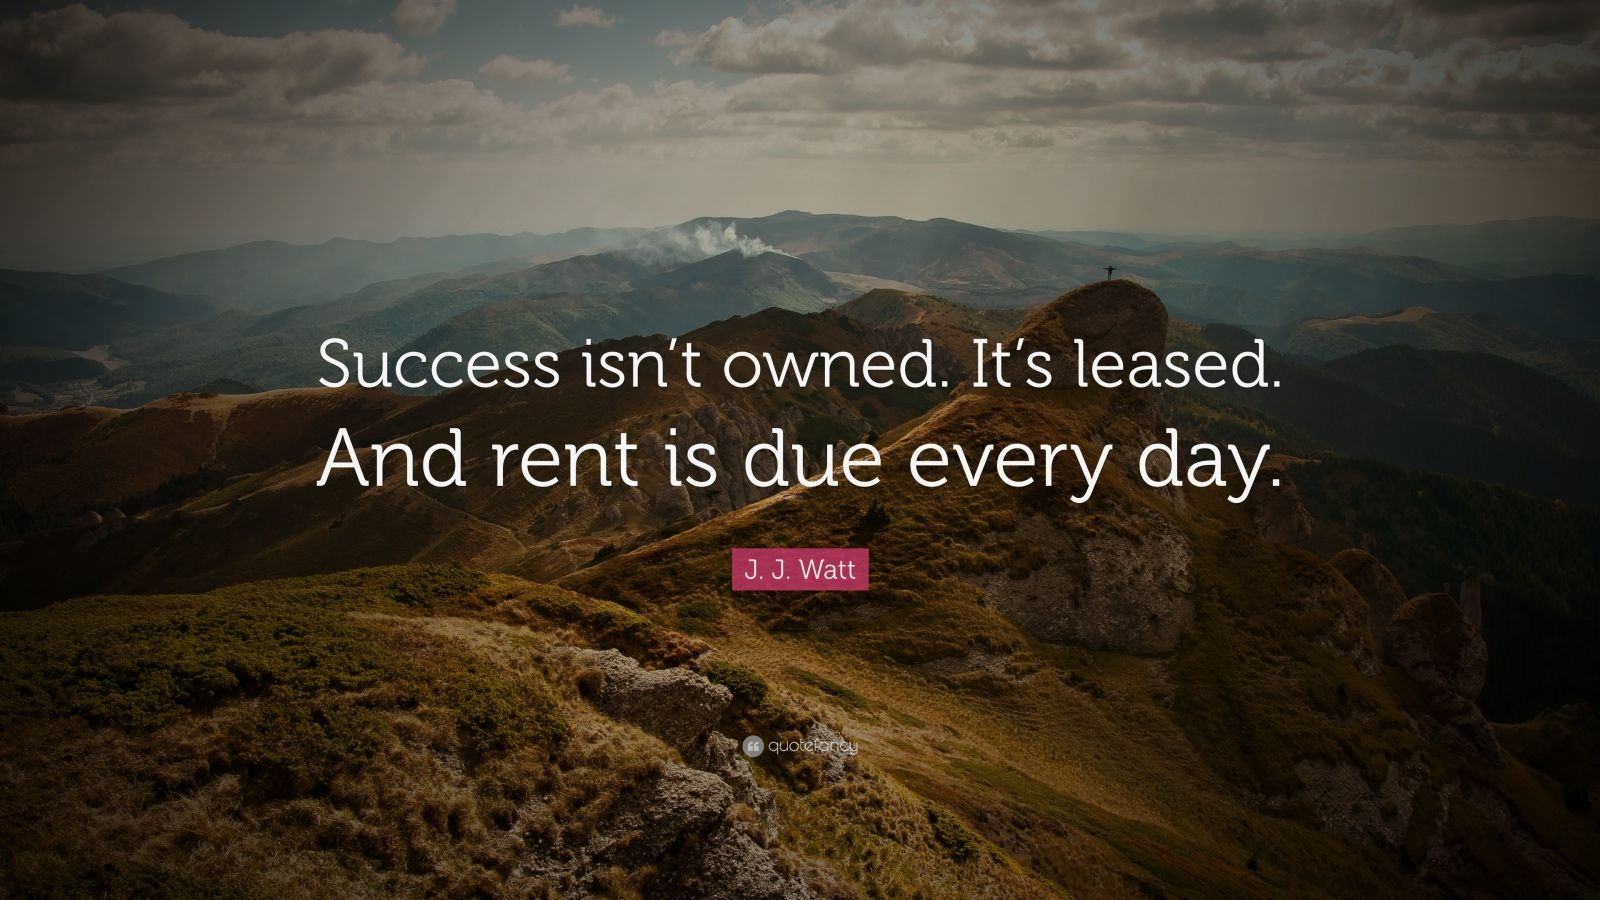 Focus Quotes Wallpaper J J Watt Quote Success Isn T Owned It S Leased And